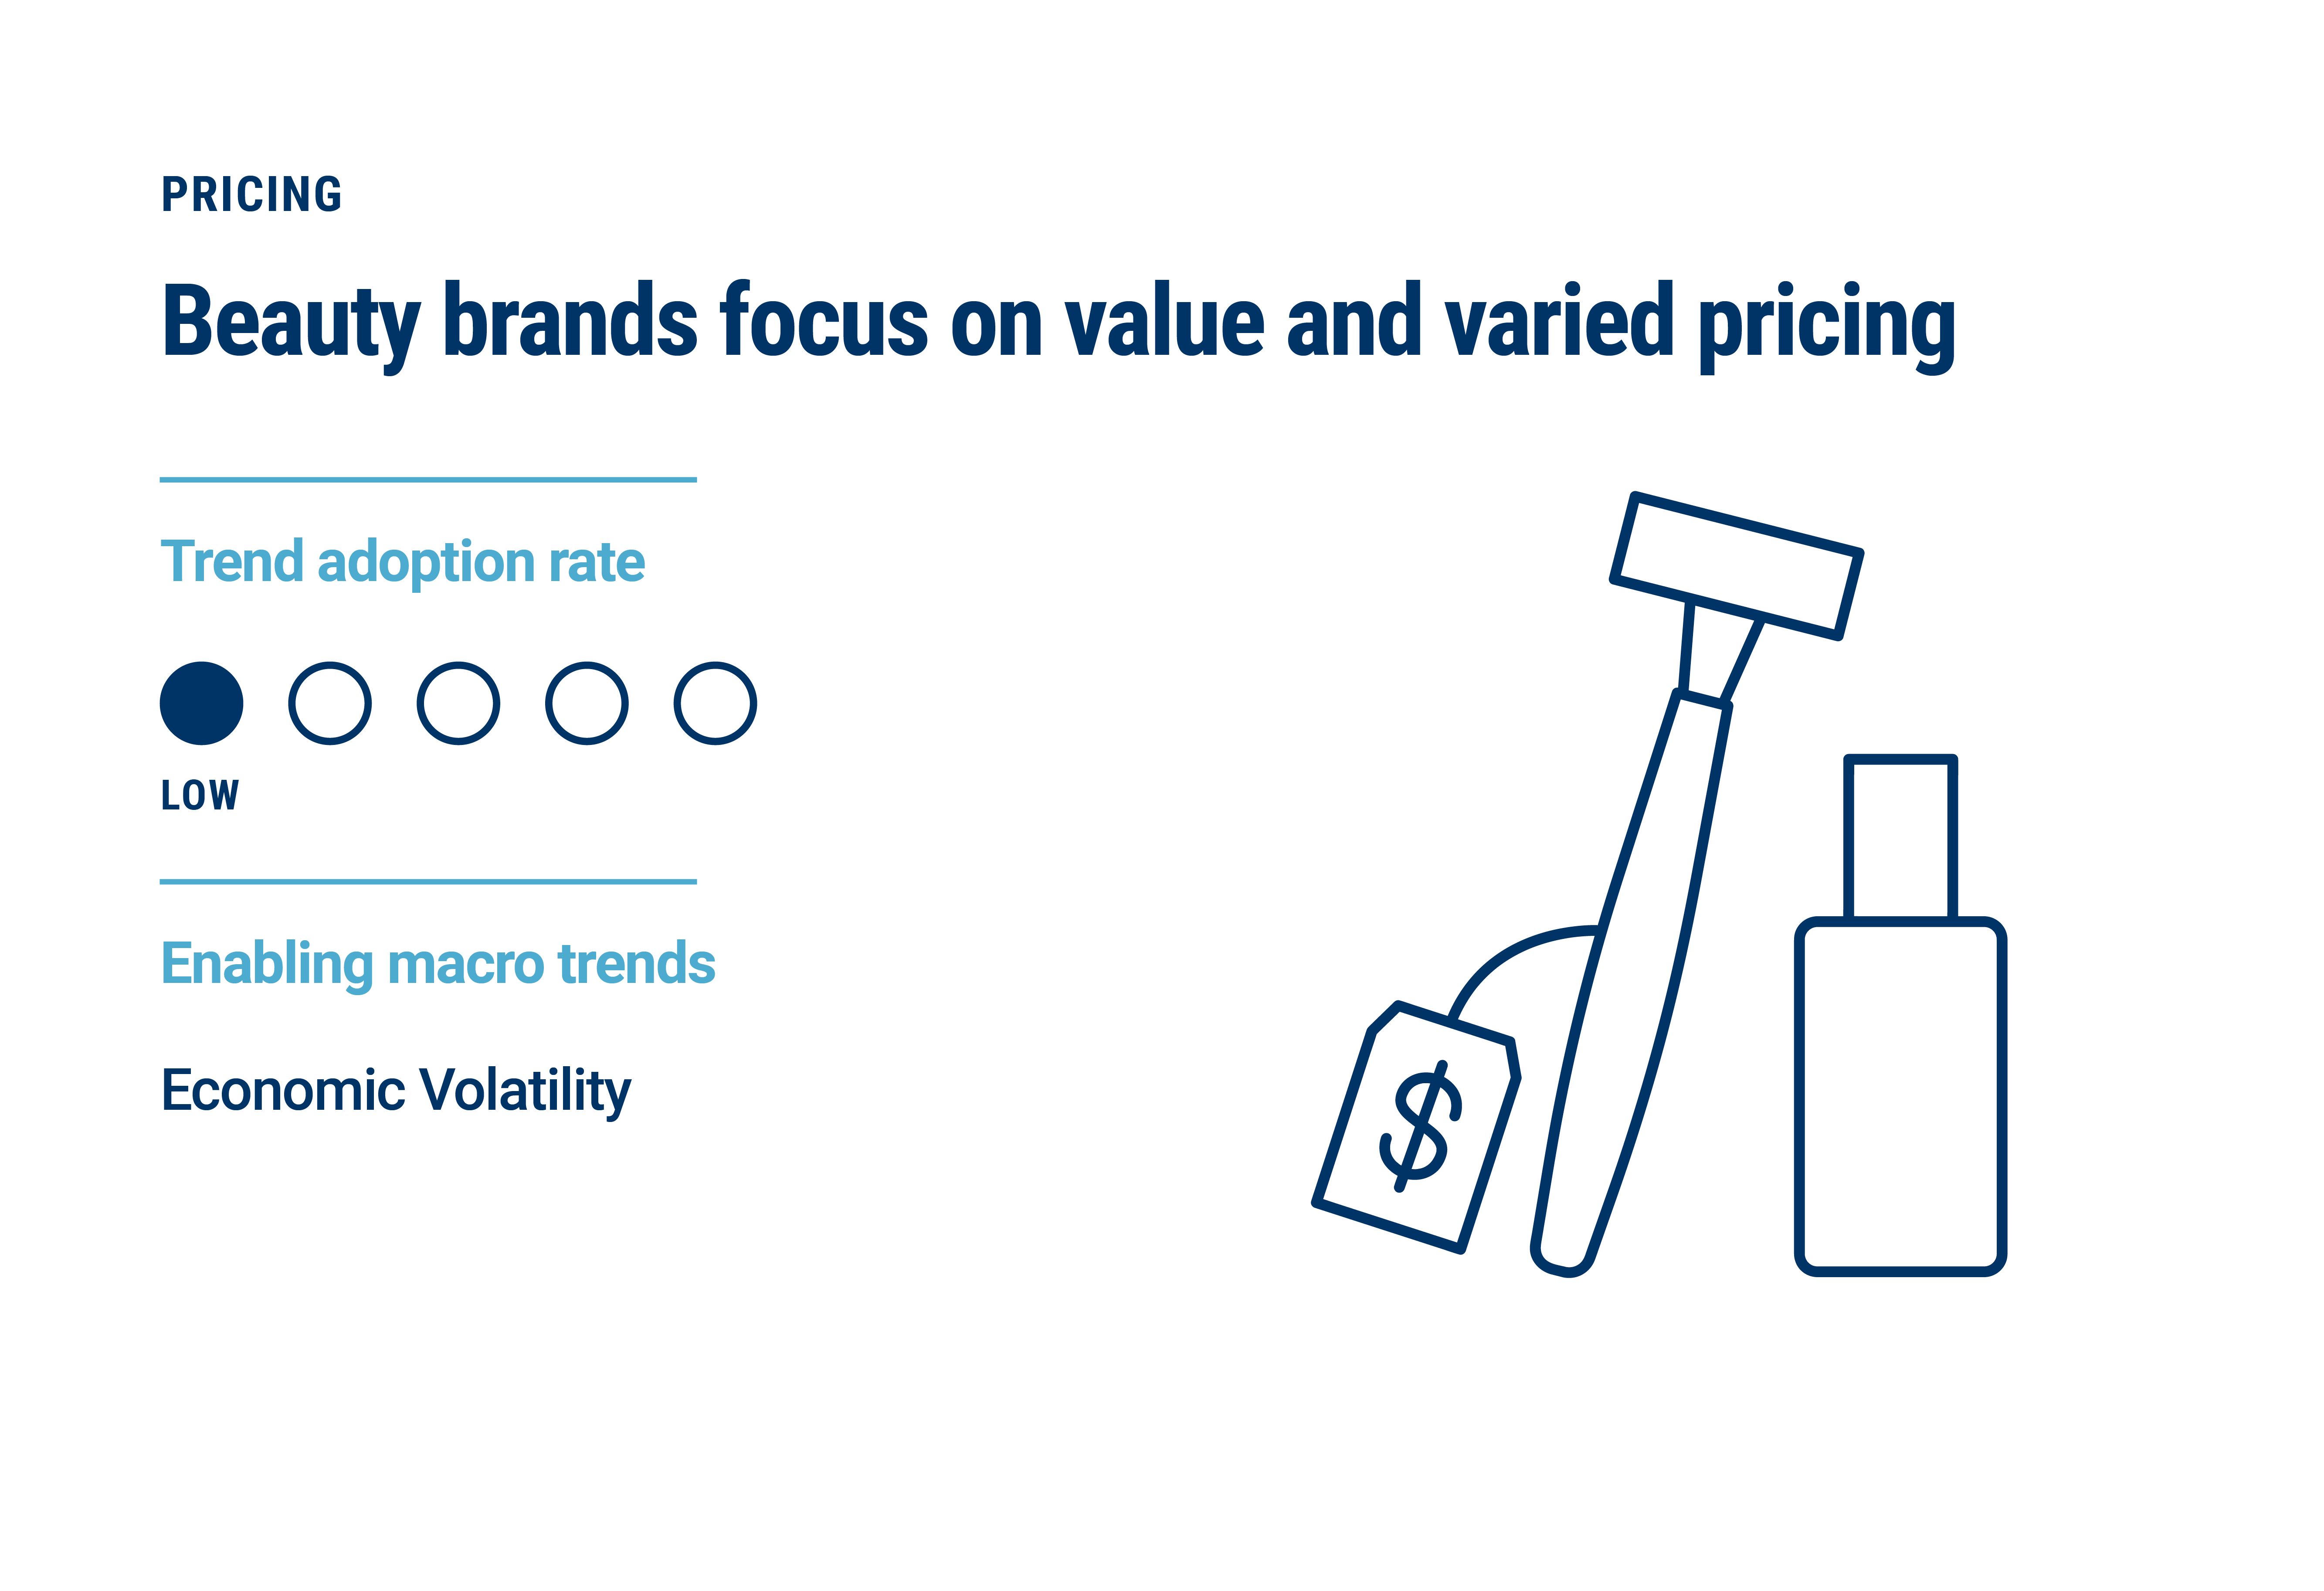 Graphic highlighting the beauty trend of beauty brands focusing on value and varied pricing, which has a low adoption rate.